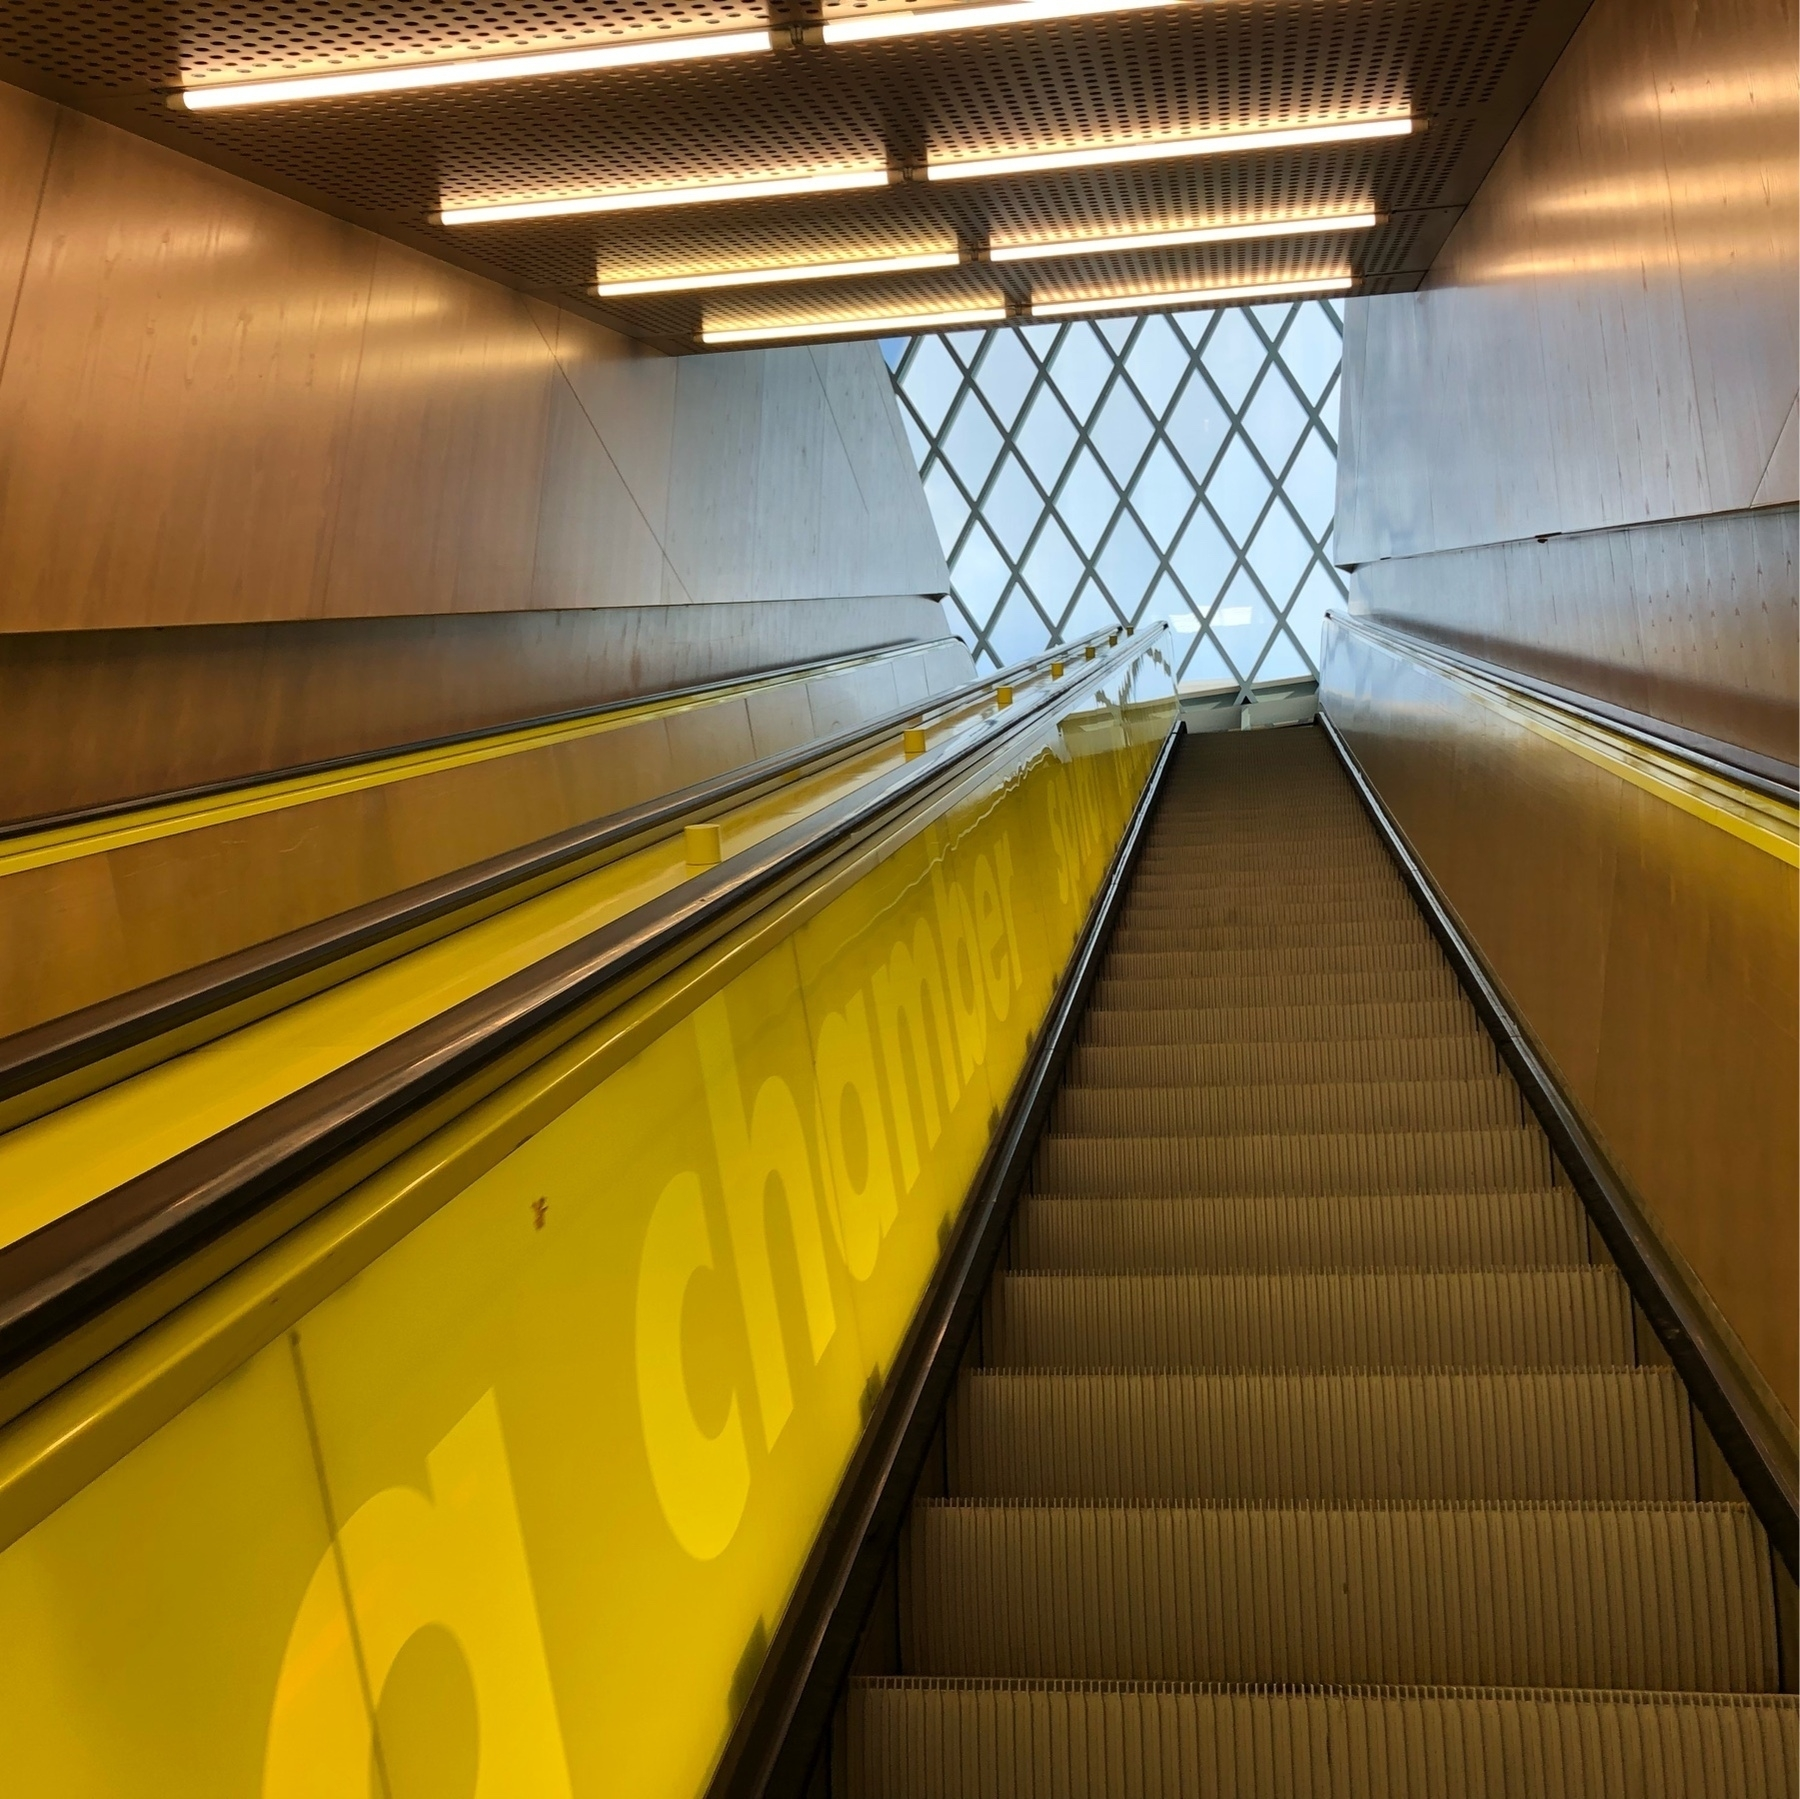 A tall yellow escalator stretches toward a square of glass roof.